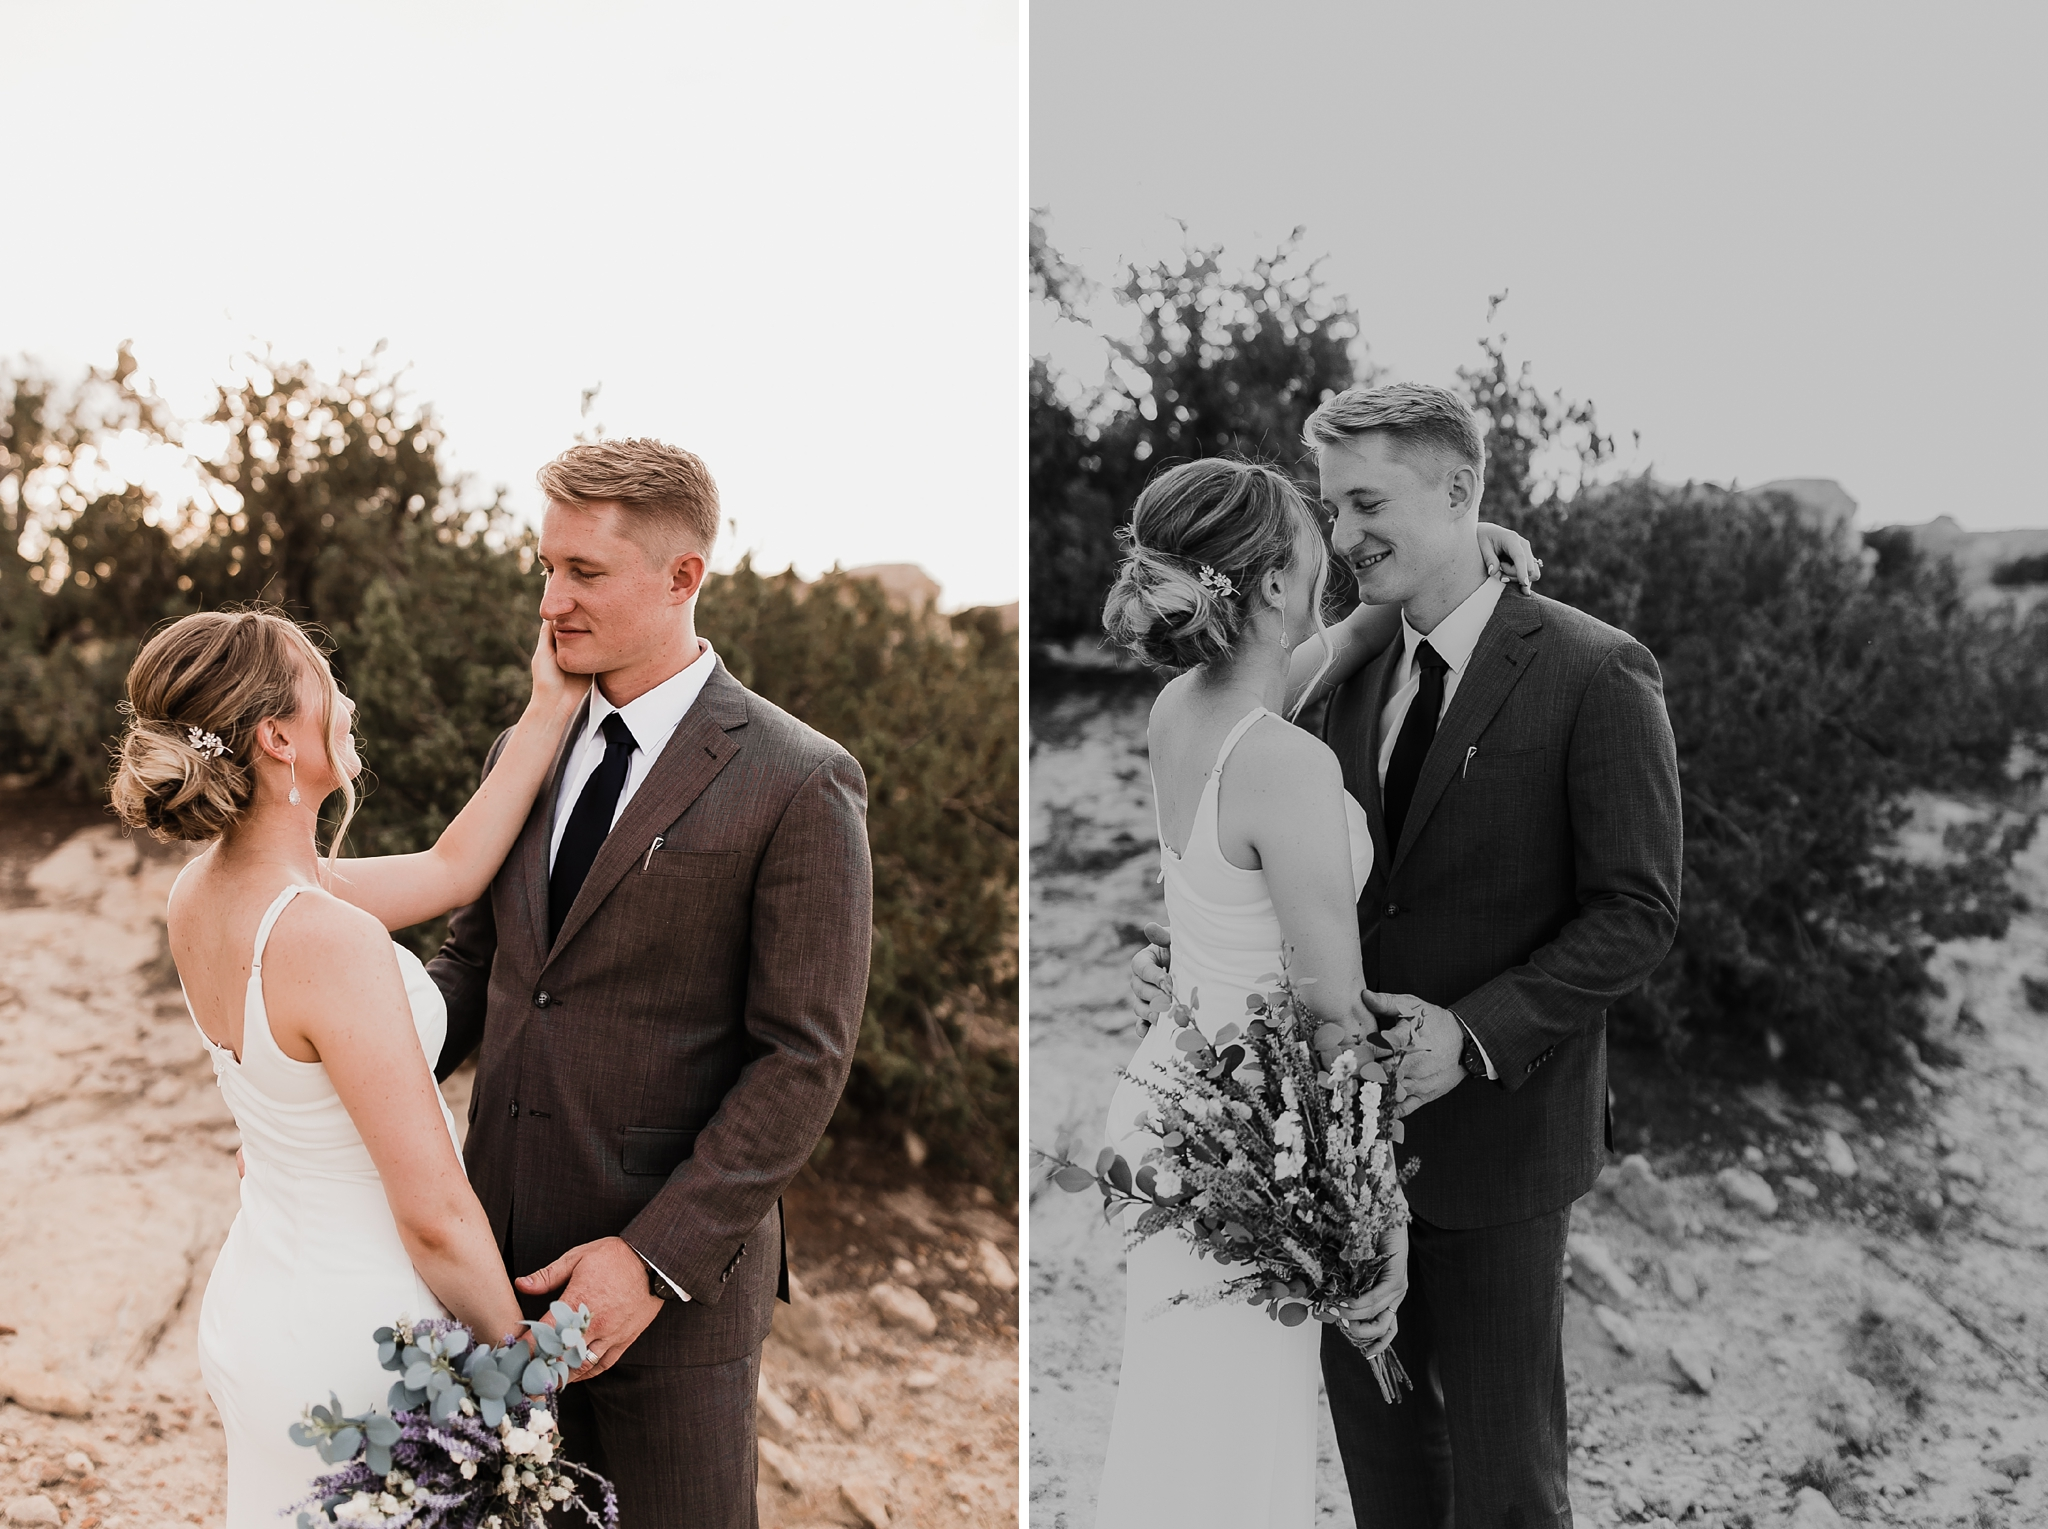 Alicia+lucia+photography+-+albuquerque+wedding+photographer+-+santa+fe+wedding+photography+-+new+mexico+wedding+photographer+-+new+mexico+wedding+-+new+mexico+elopement+-+elopment+-+mountain+elopement_0006.jpg